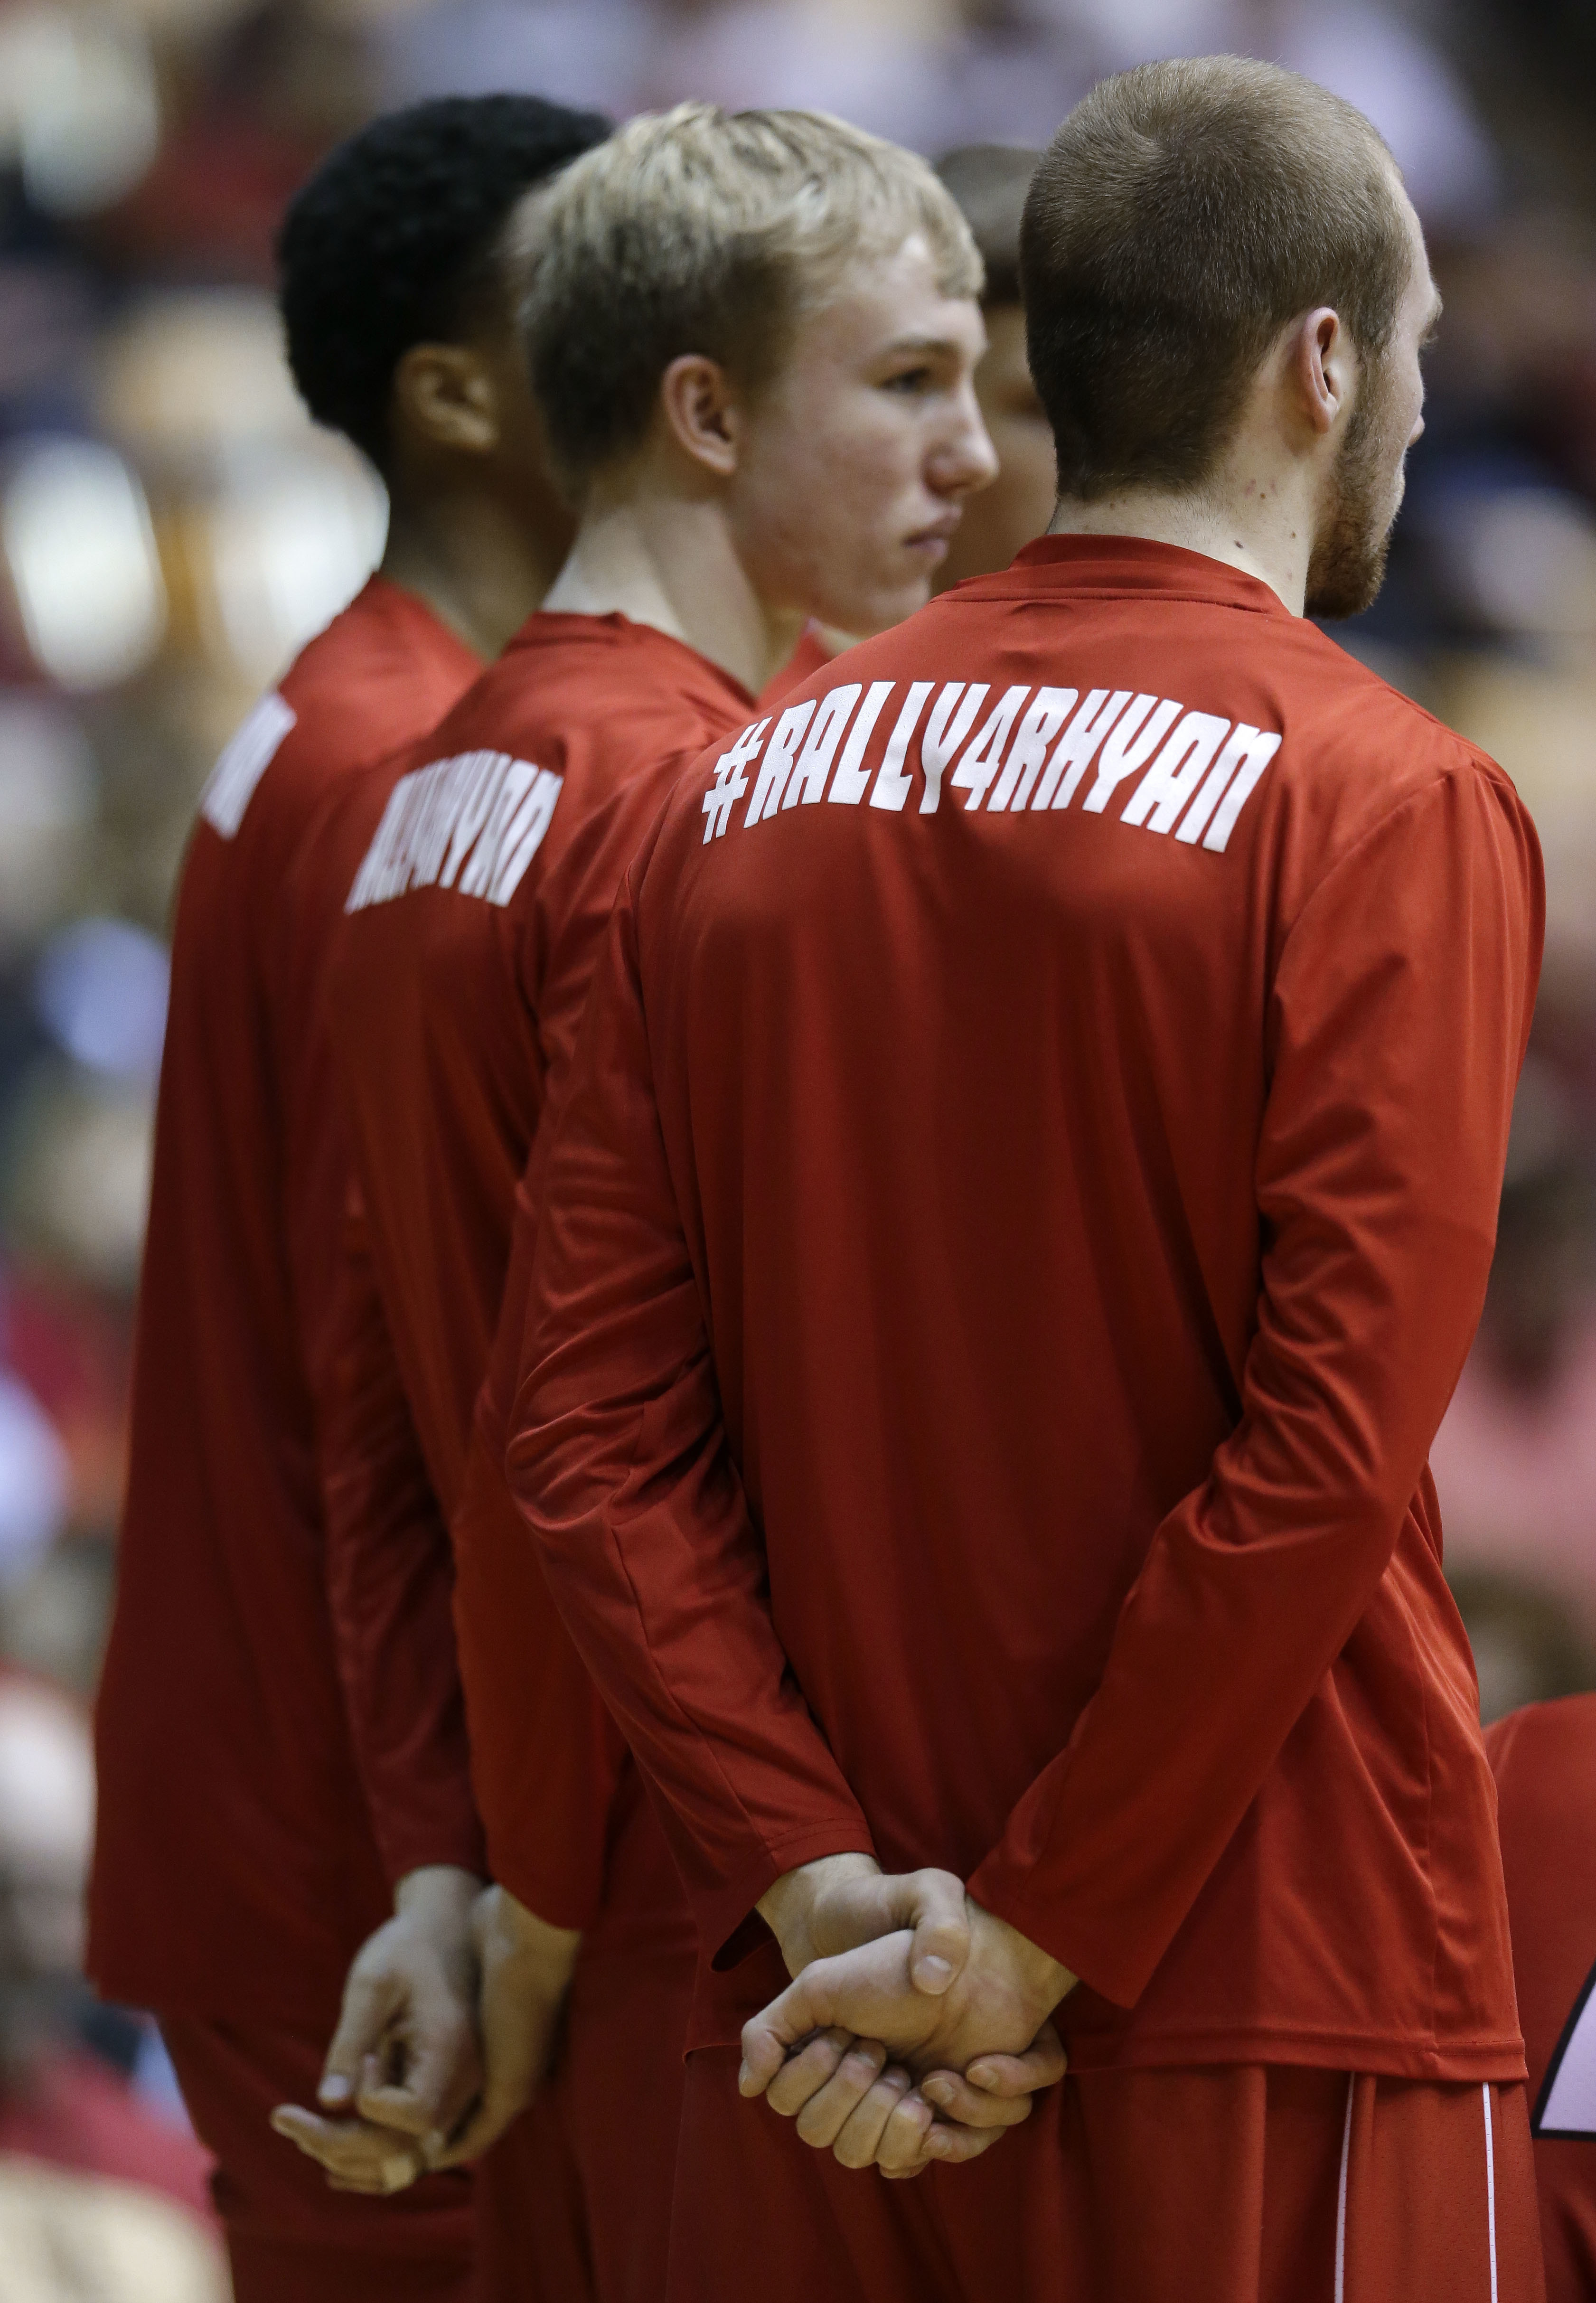 FILE - In this March 5, 2016, file photo, Austin Peay players wear a slogan on their shirts for Rhyan Loos, the 5-year-old granddaughter of coach Dave Loos, during an NCAA college basketball game against UT Martin at the championship of the Ohio Valley Co